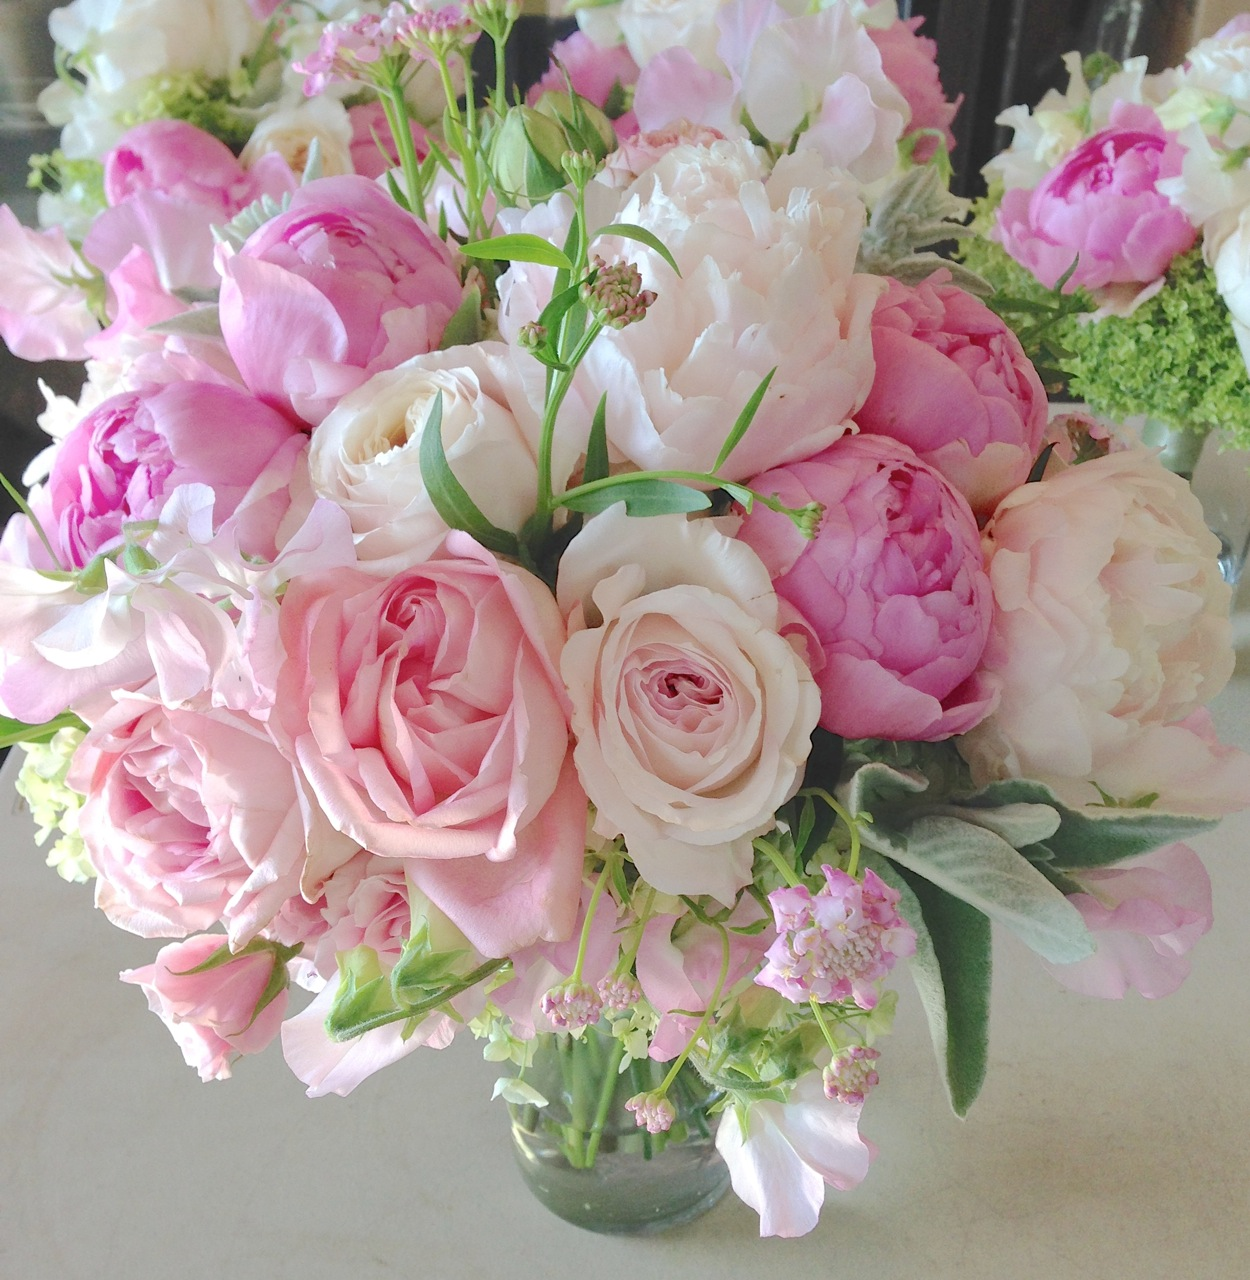 peas and peonies recipe for fragrance peonies garden roses amp sweet peas